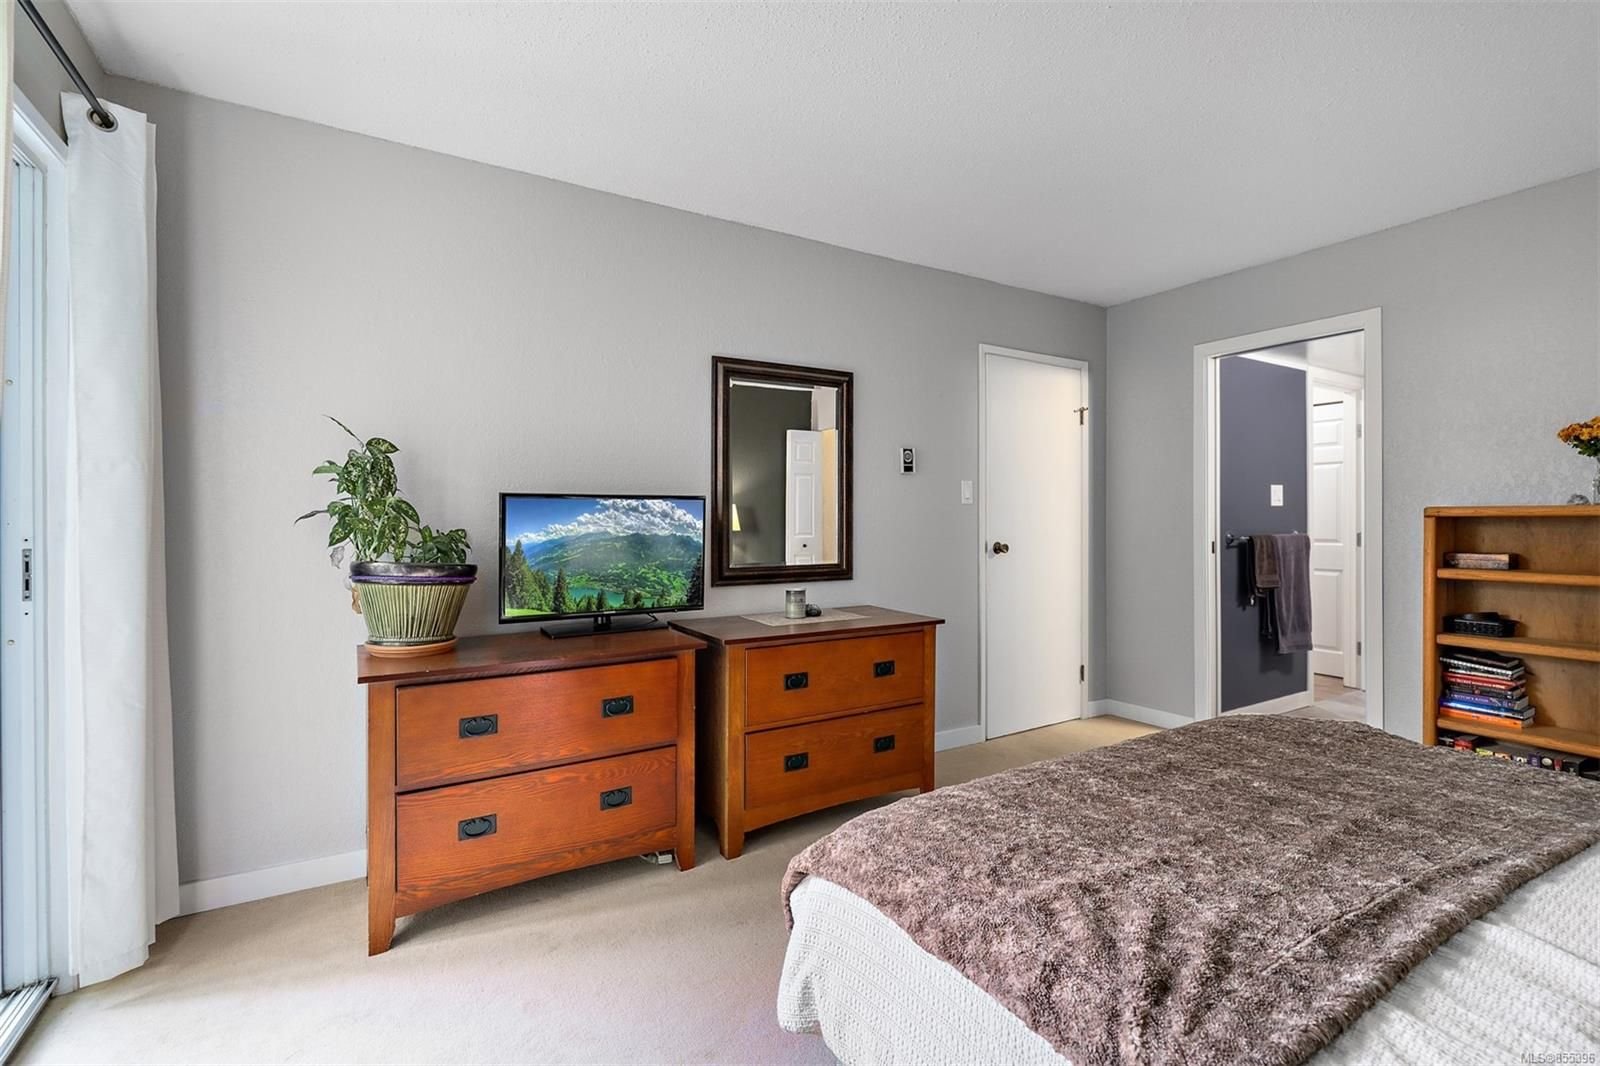 Photo 24: Photos: 308 1060 Linden Ave in : Vi Rockland Condo for sale (Victoria)  : MLS®# 855396